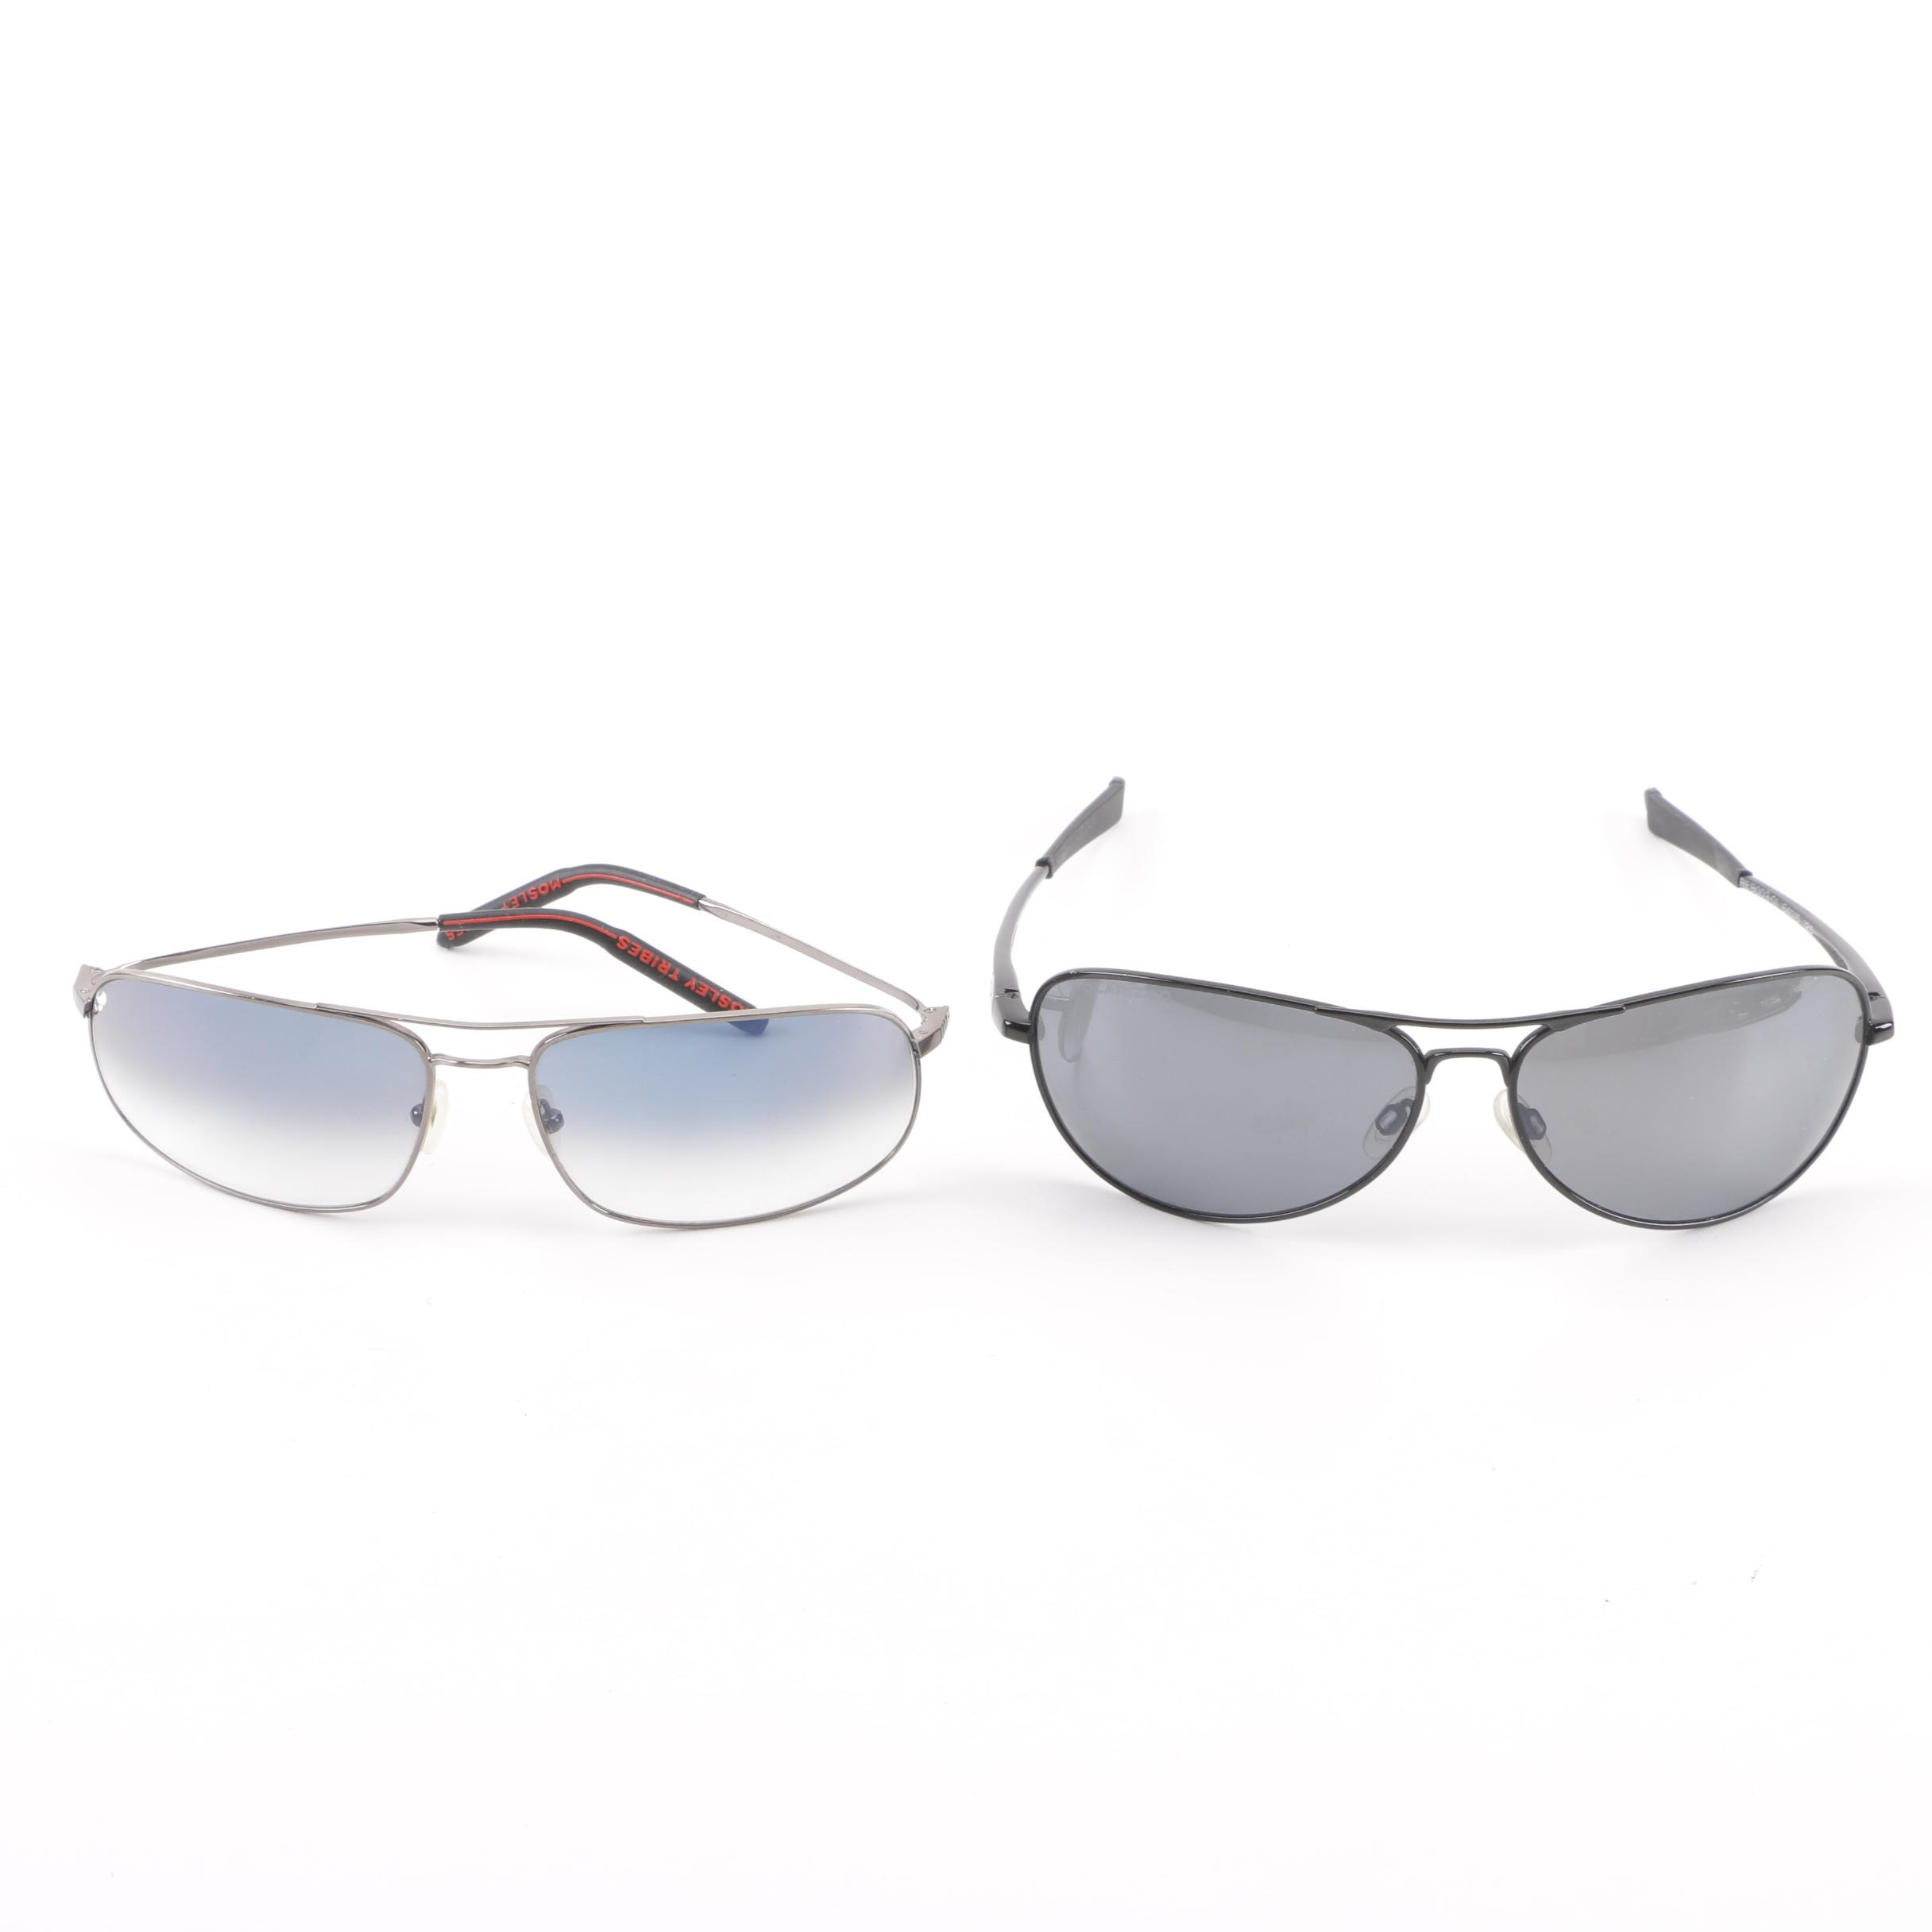 Revo Transom Polarized Aviators and Mosley Tribes Gradient Lens Sunglasses